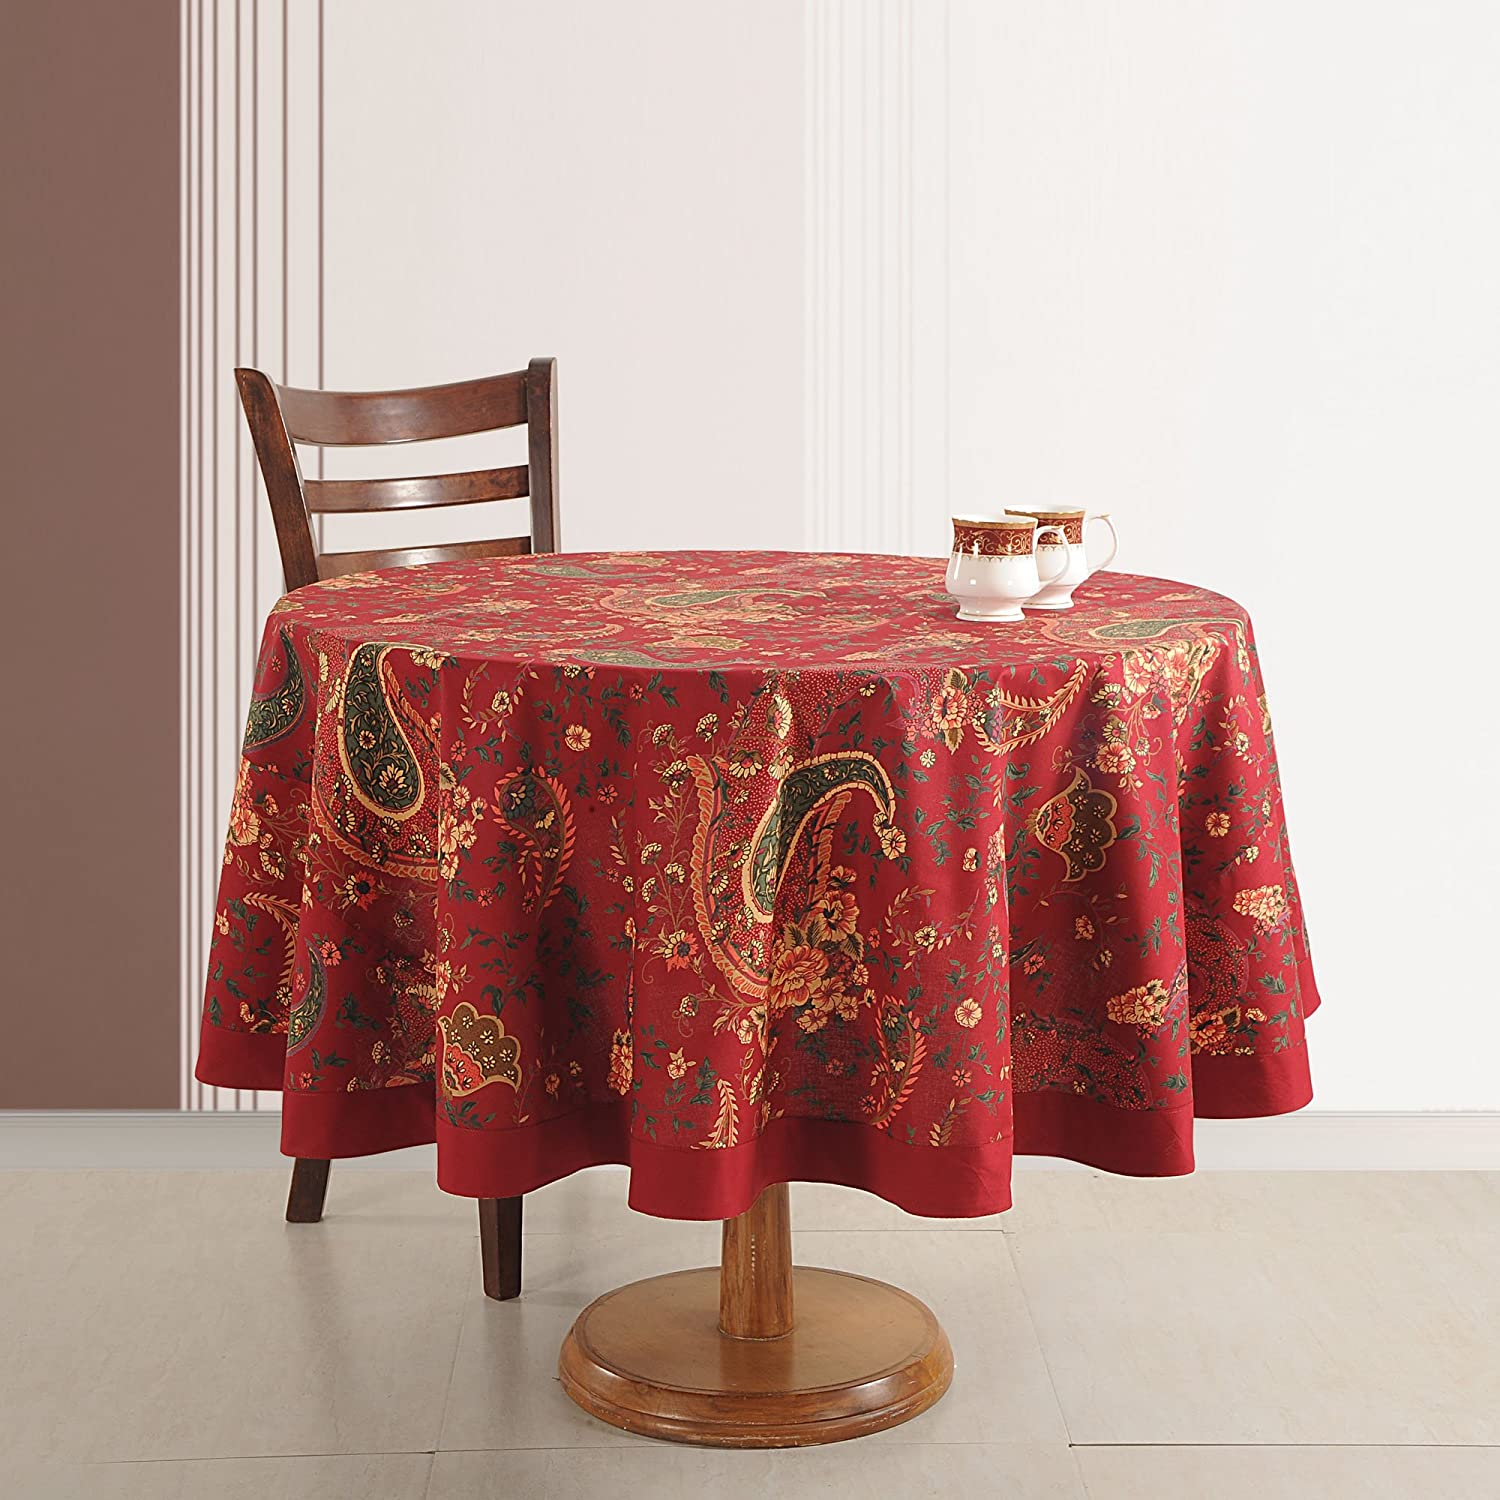 ShalinIndia Cotton Tablecloths 4 Seater Printed Floral Indian Home Décoration 70 Inches Round